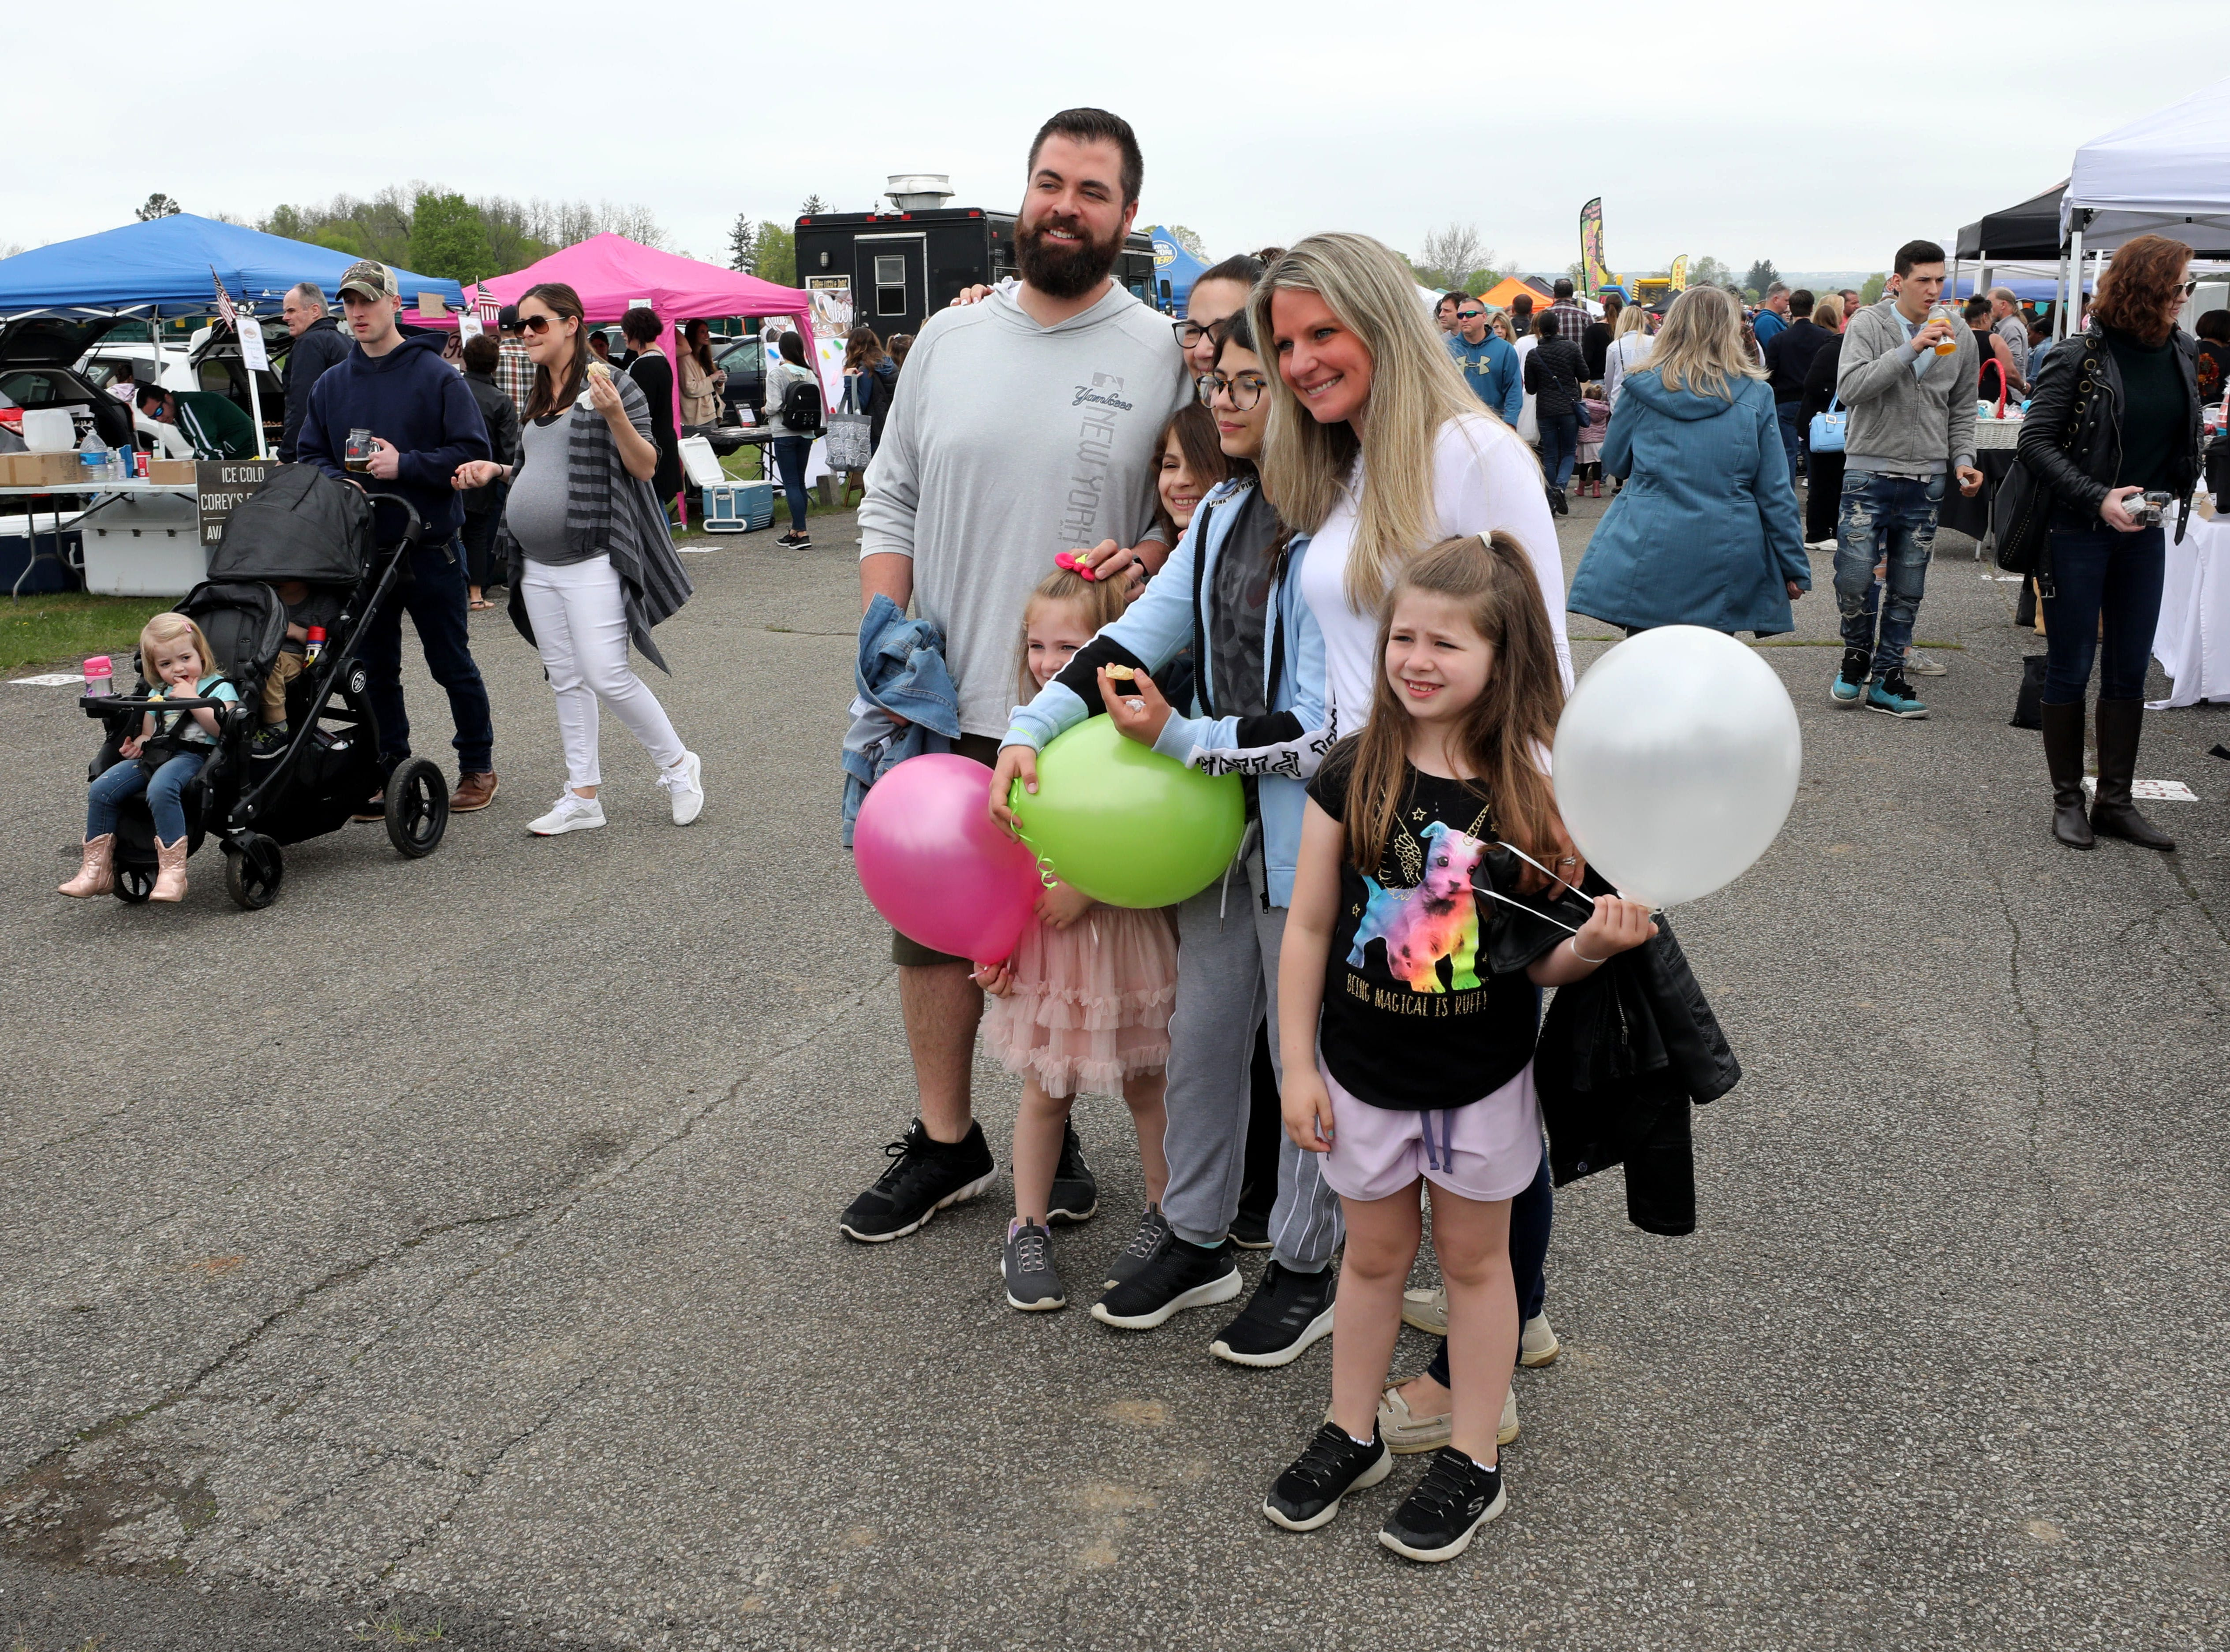 Festival goers pose for photos during the K104.7 Cupcake Festival at the Stormville Airport, May 4, 2019.